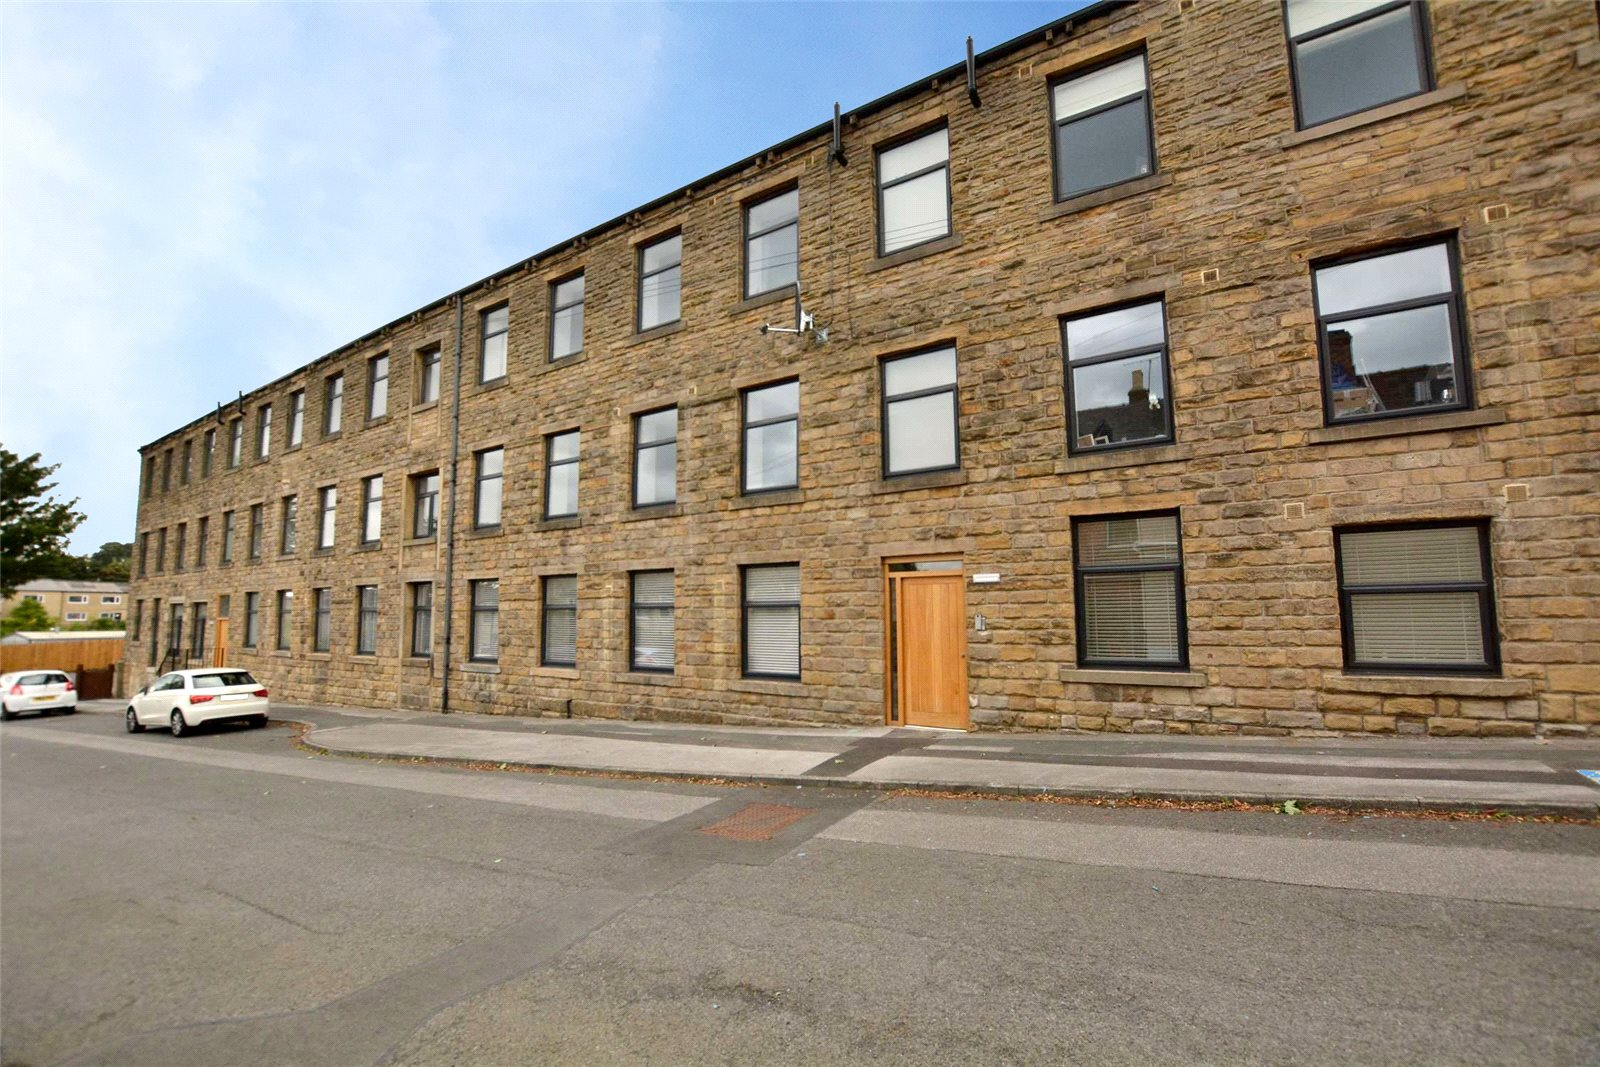 apartment for sale in Pudsey, exterior three floor apartment complex